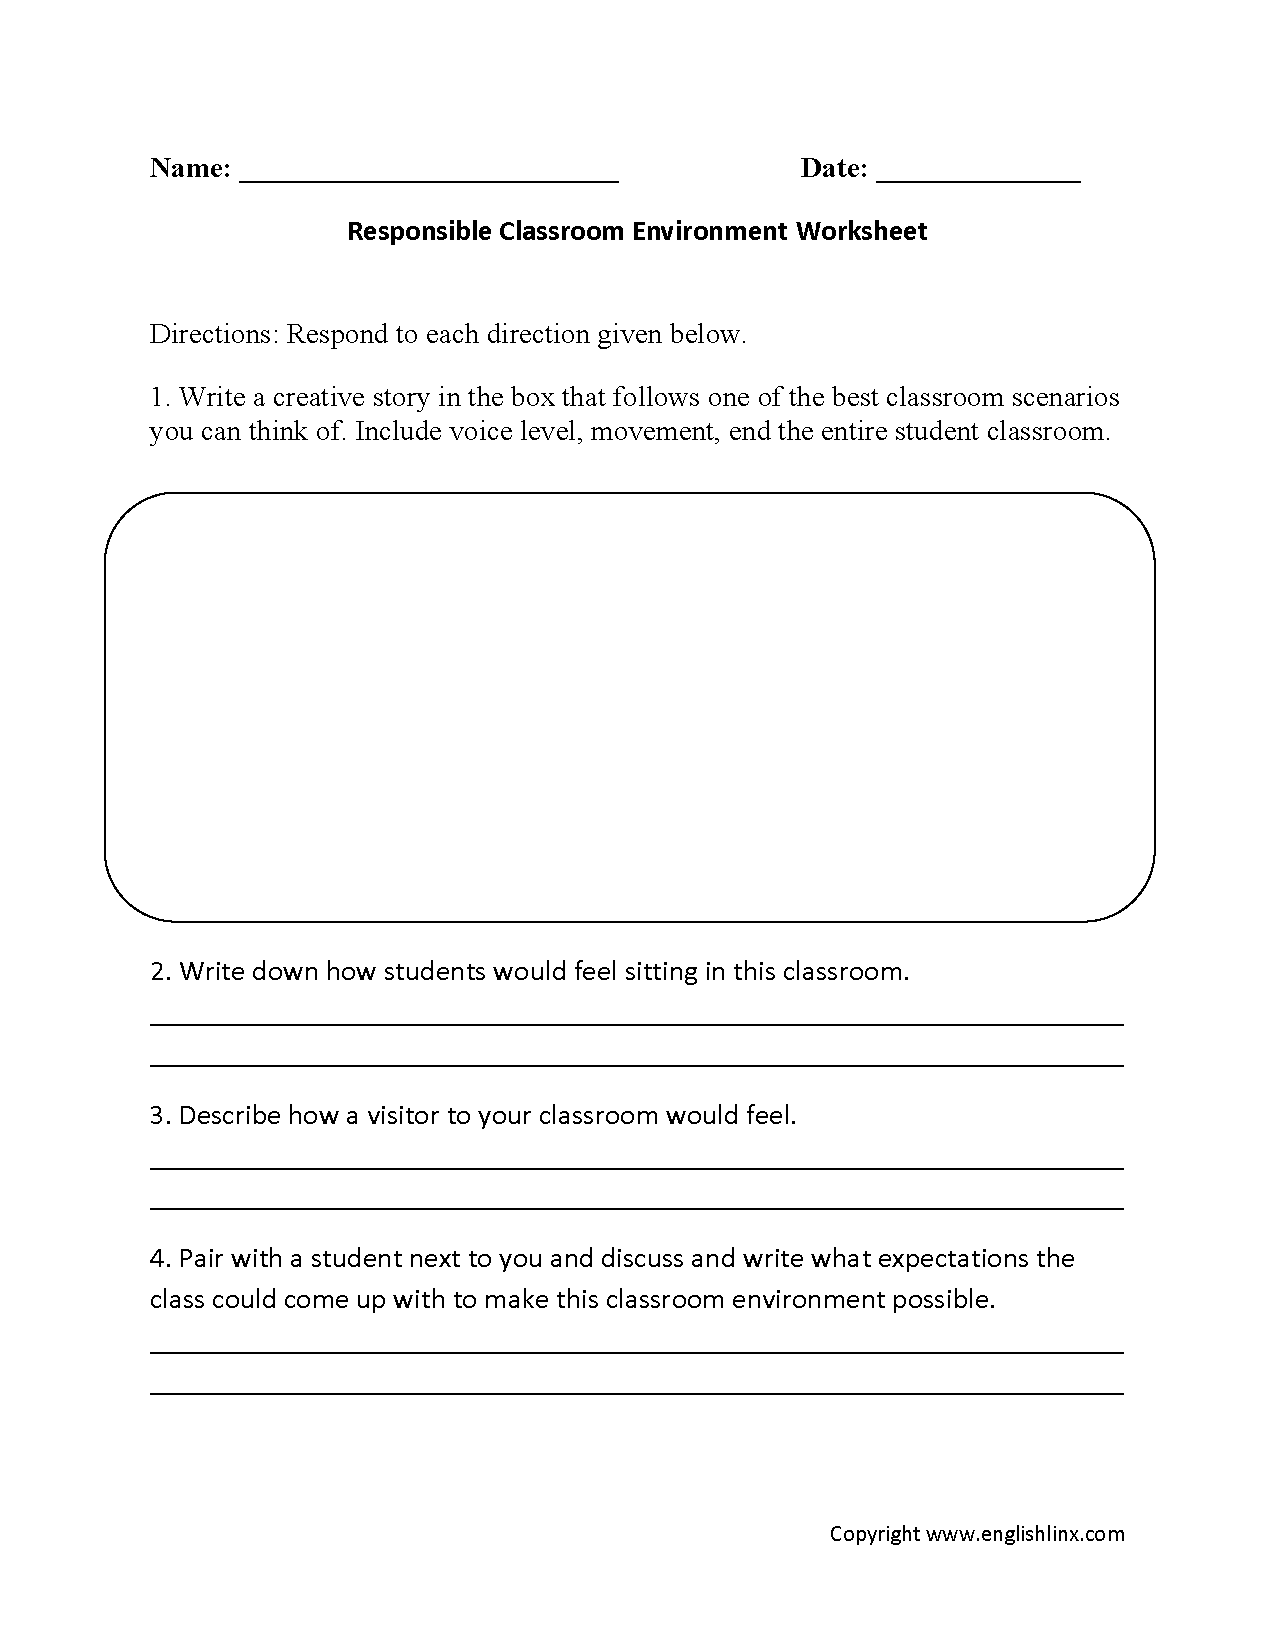 Responsible Class Environment Back To School Worksheets